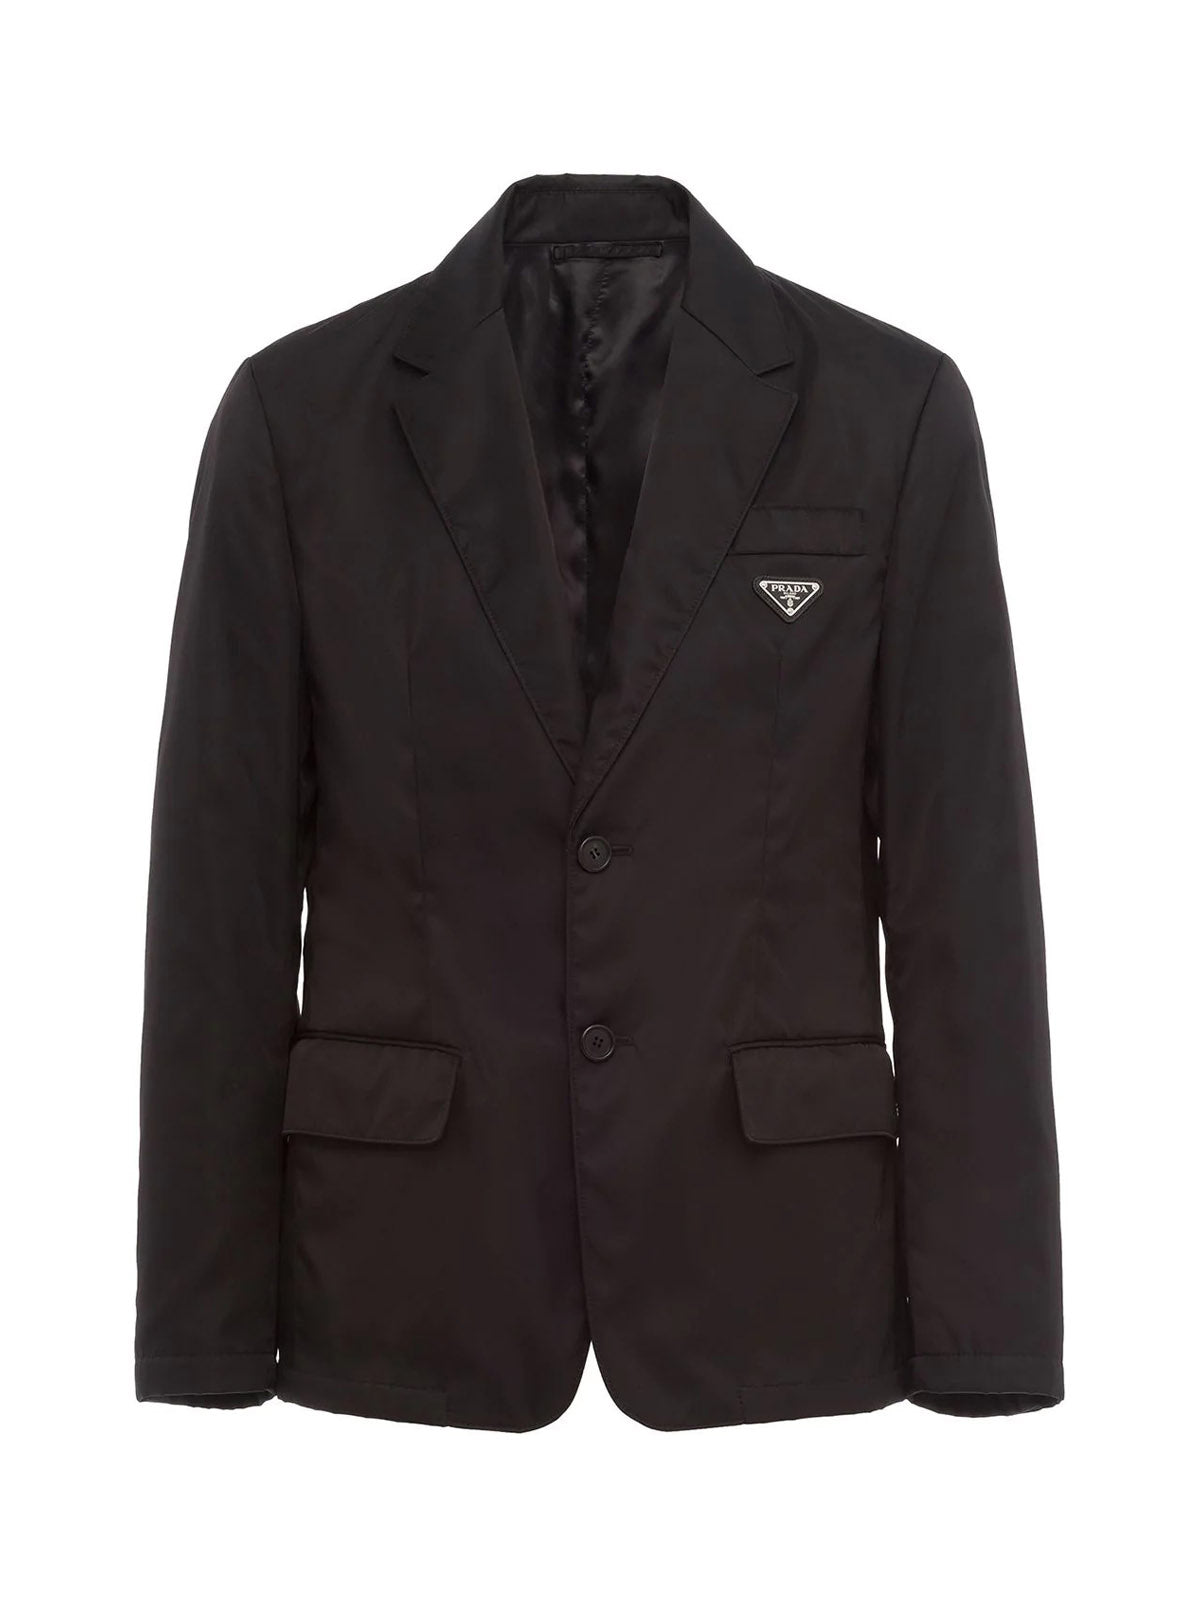 Single breasted blazer with application